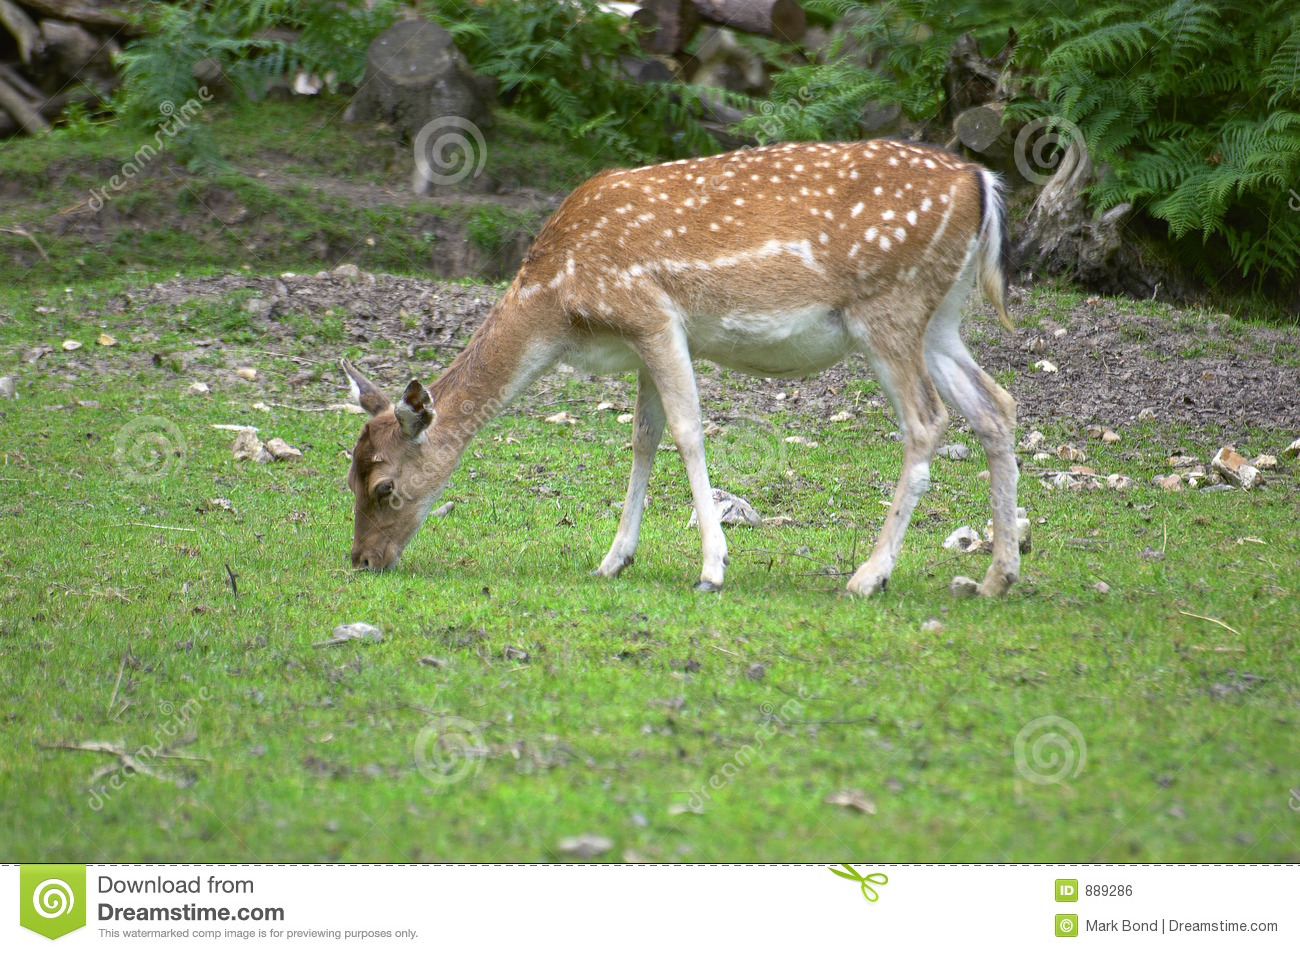 Spotted Dear in mating season - India Travel Forum